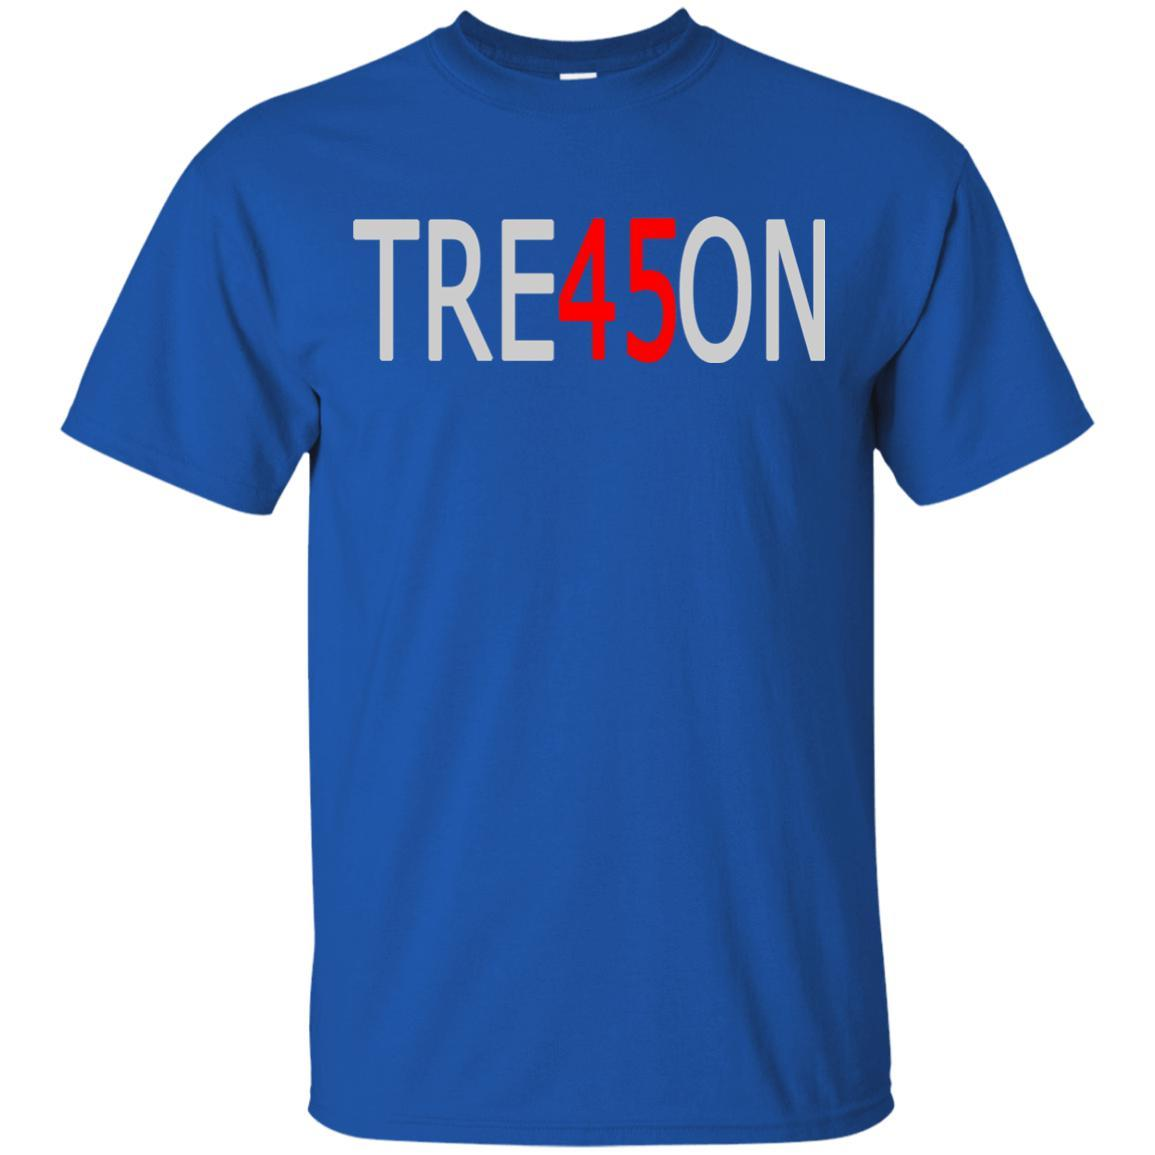 TRE45ON Shirt